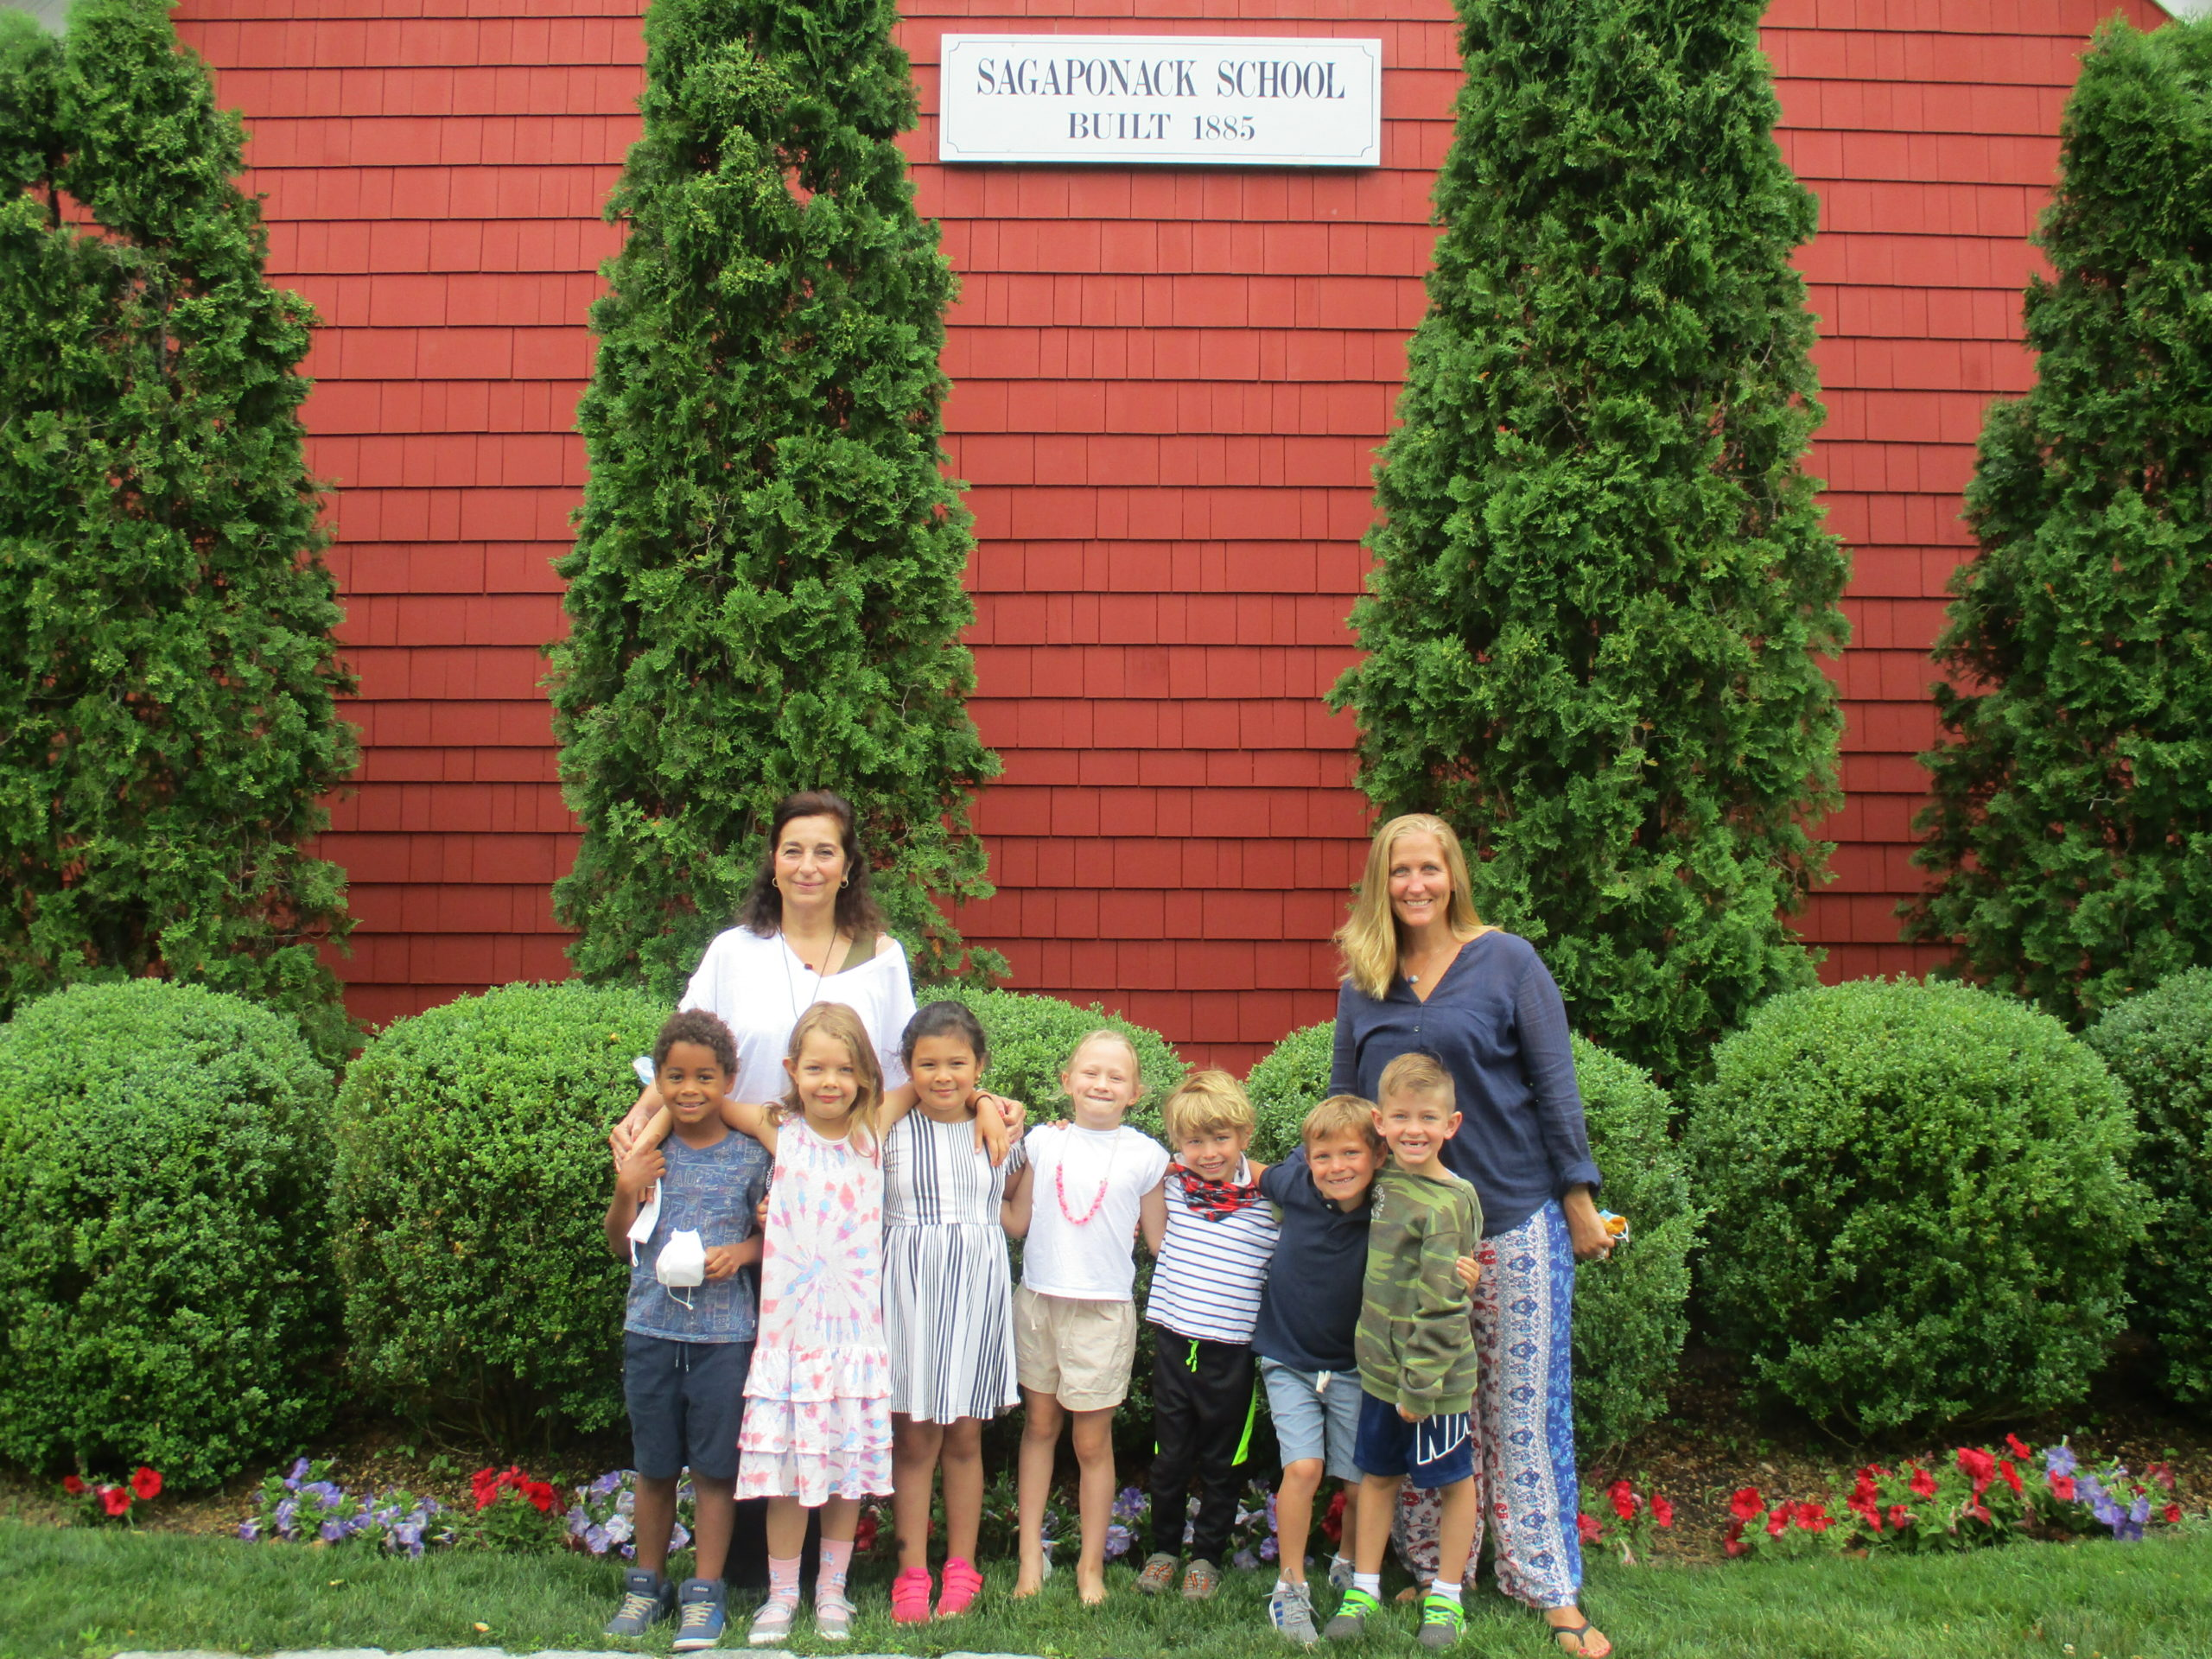 The kindergarten and first grade students at the Sagaponack School with teaching aid Mrs. Velasquez and teacher Mrs. Lombardo celebrated the last day of school with a class picture.